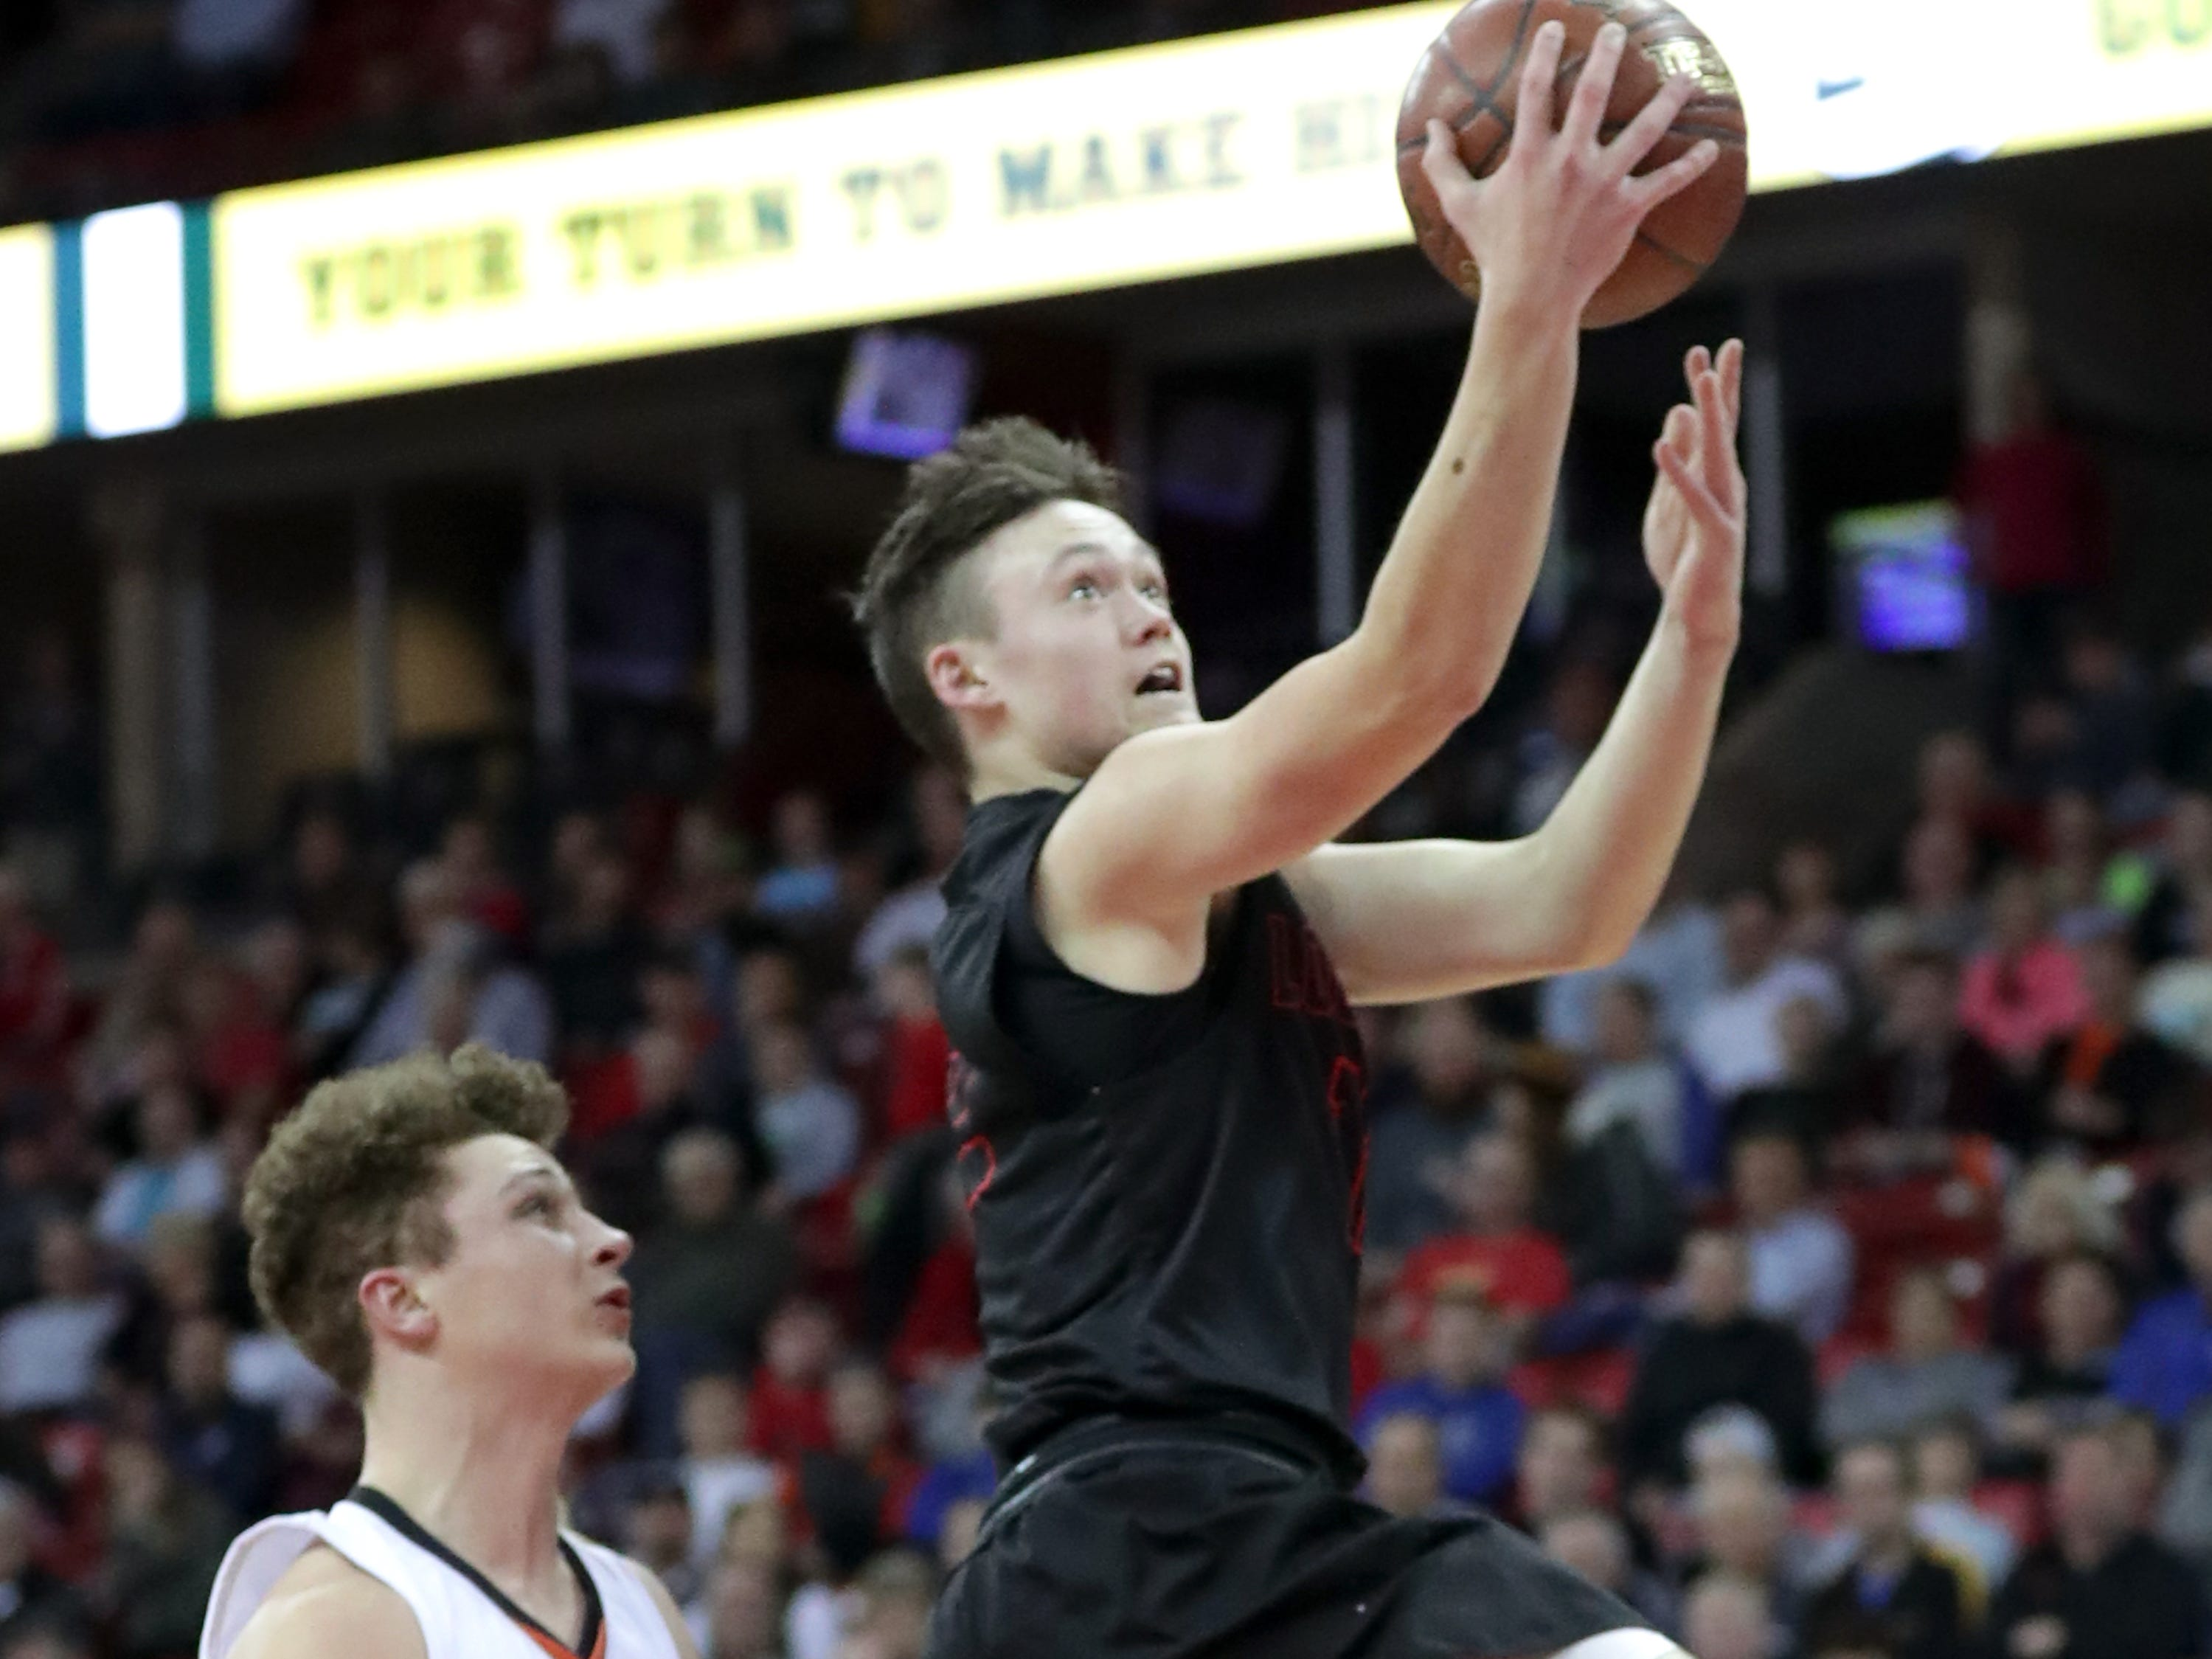 Lourdes Academy's #12 Joshua Bauer drives to the basket against Osseo-Fairchild High School during their WIAA Division 4 boys basketball state semifinal on Thursday, March 14, 2019, at the Kohl Center in Madison, Wis.